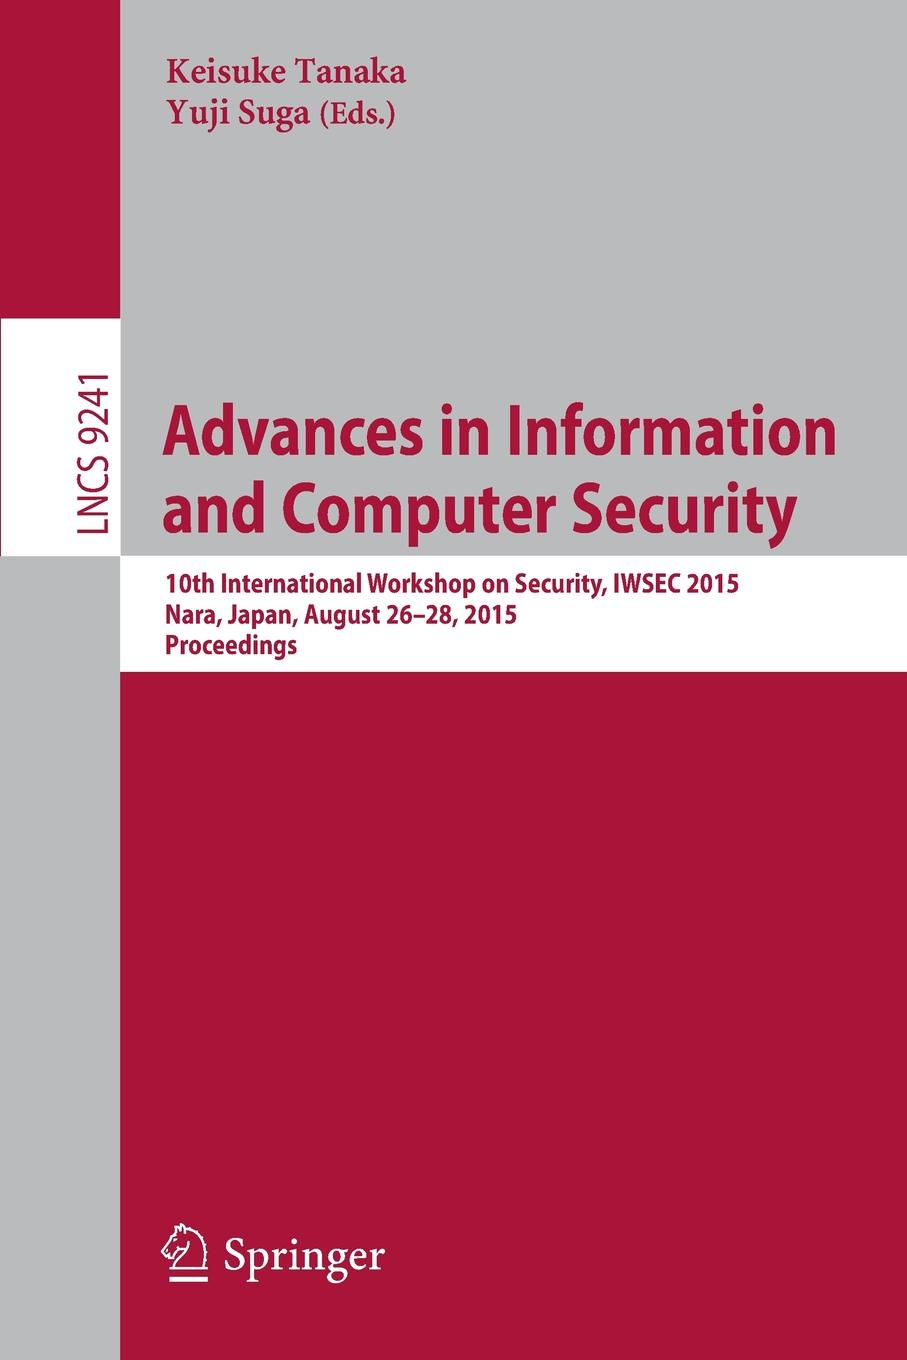 Advances in Information and Computer Security. 10th International Workshop on Security, IWSEC 2015, Nara, Japan, August 26-28, 2015, Proceedings nicole detraz international security and gender